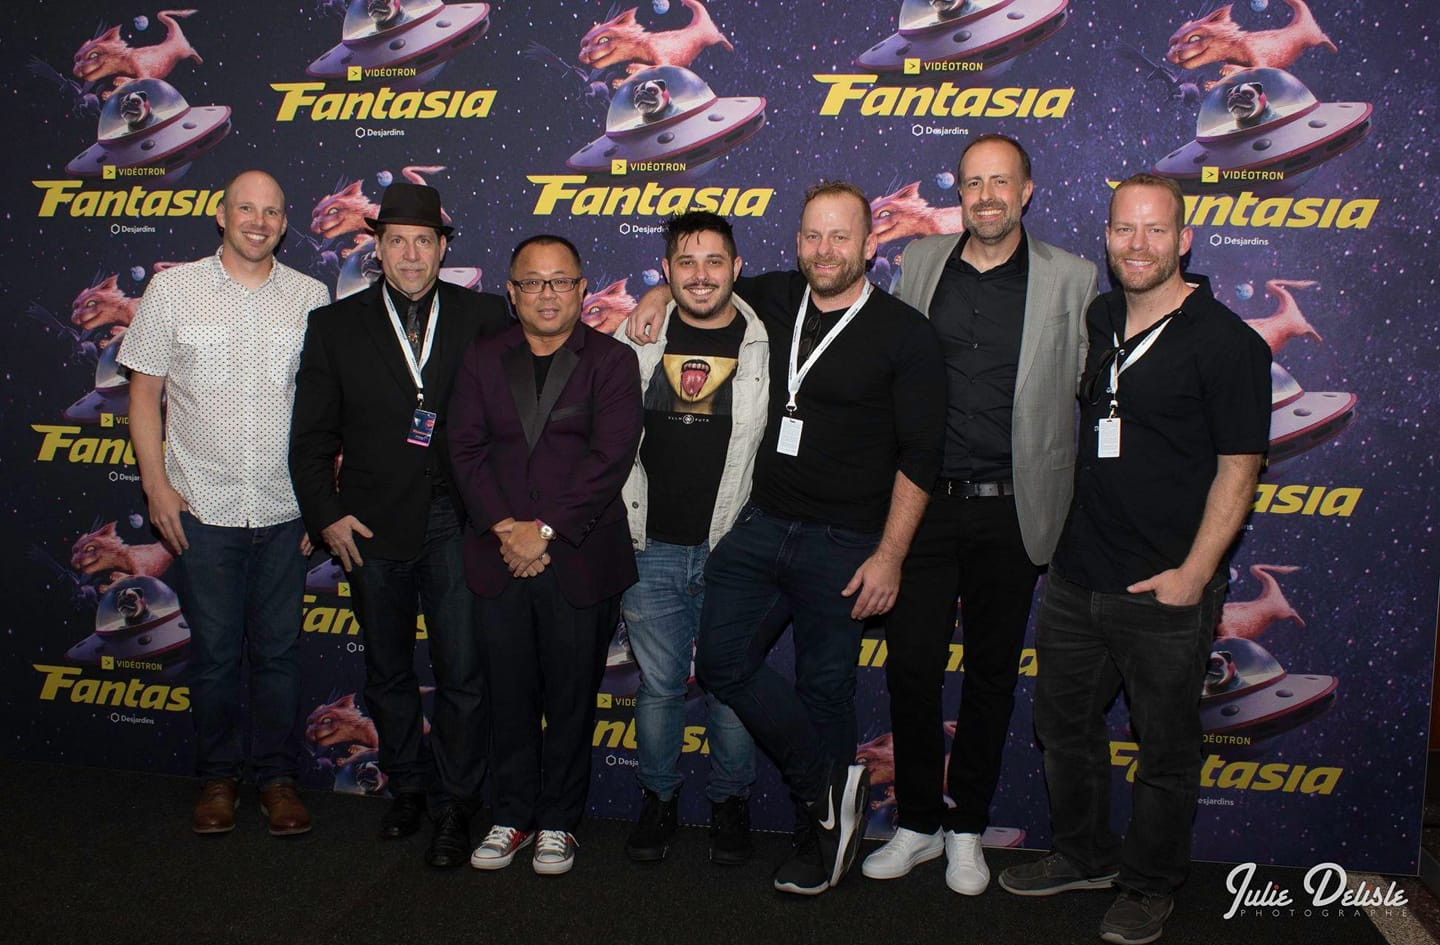 World Premiere of THE WRETCHED at the Fantasia Film Festival, with Terry Yates, Ed Polgardy, Chang Tseng, Travis Cultreri, Brett Pierce, Devin Burrows, and Drew Pierce.